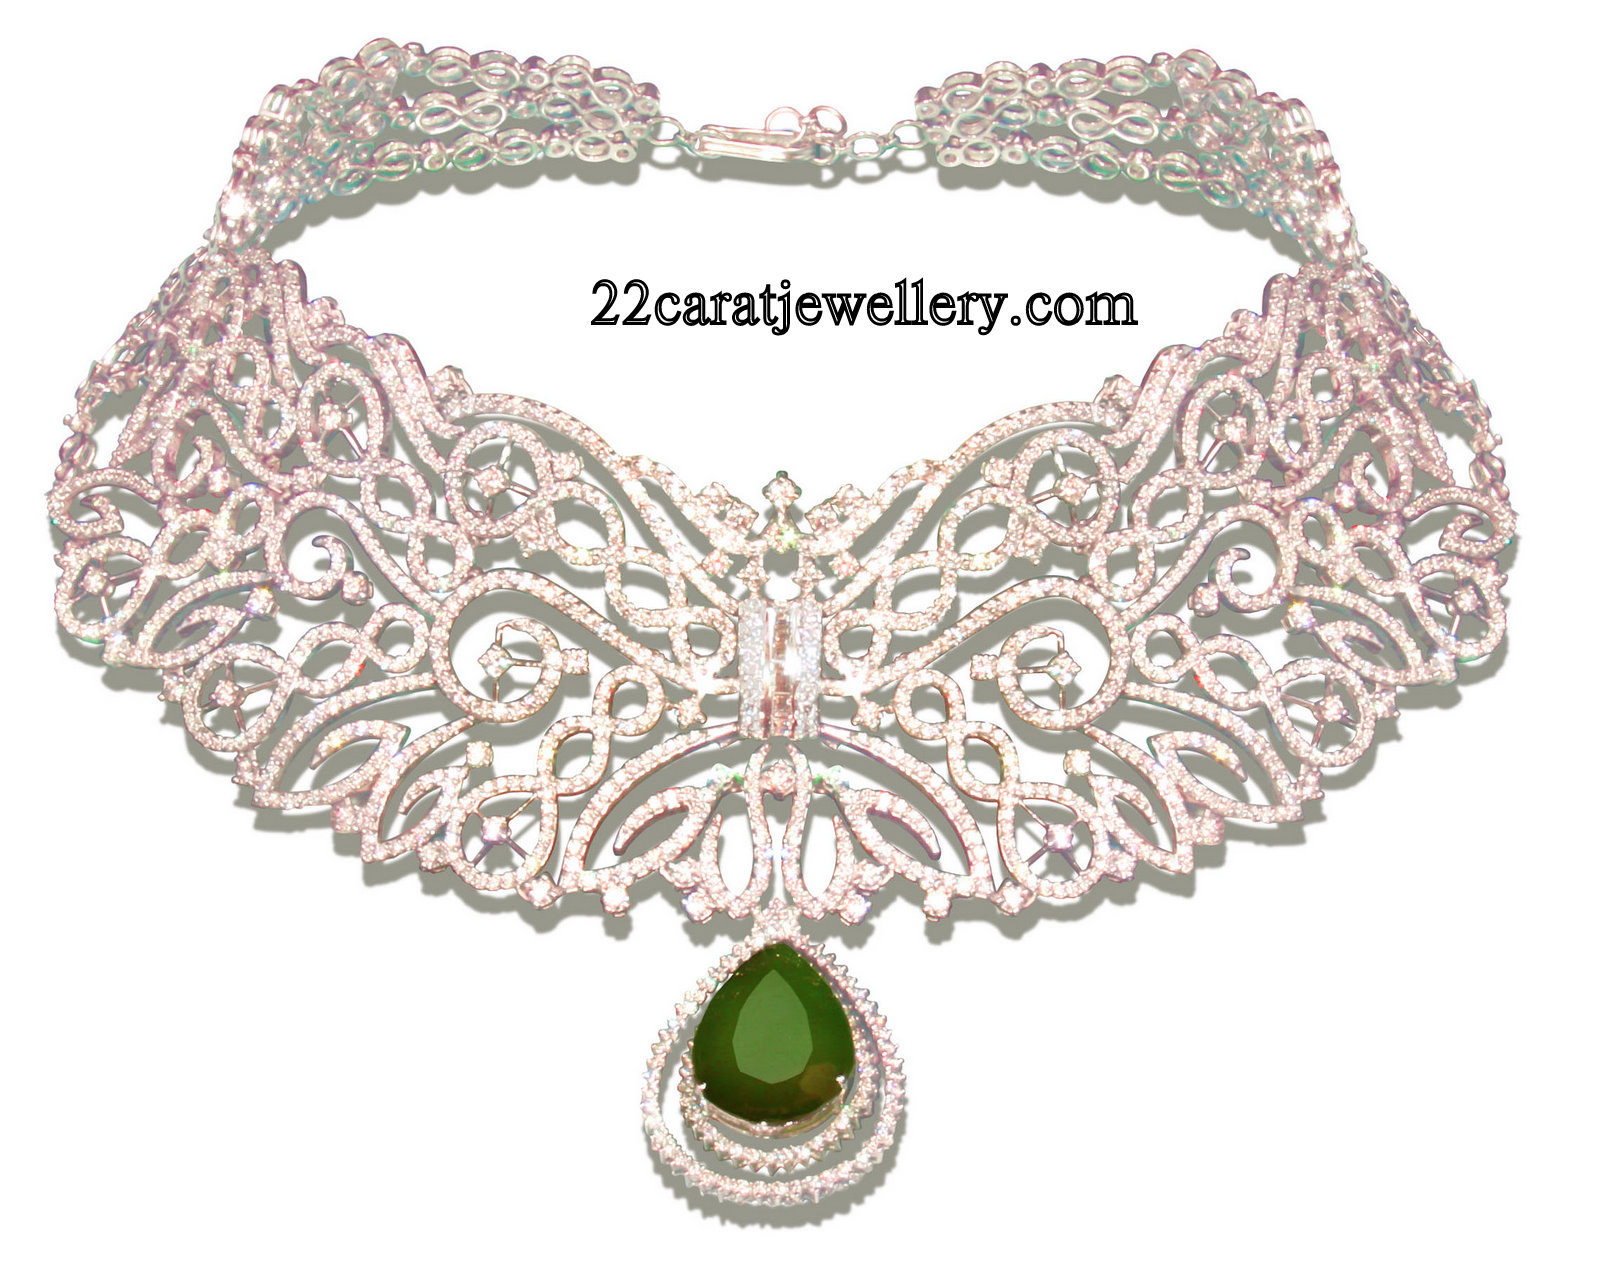 Diamond Bridal and Choker Necklace Sets Gallery Jewellery Designs